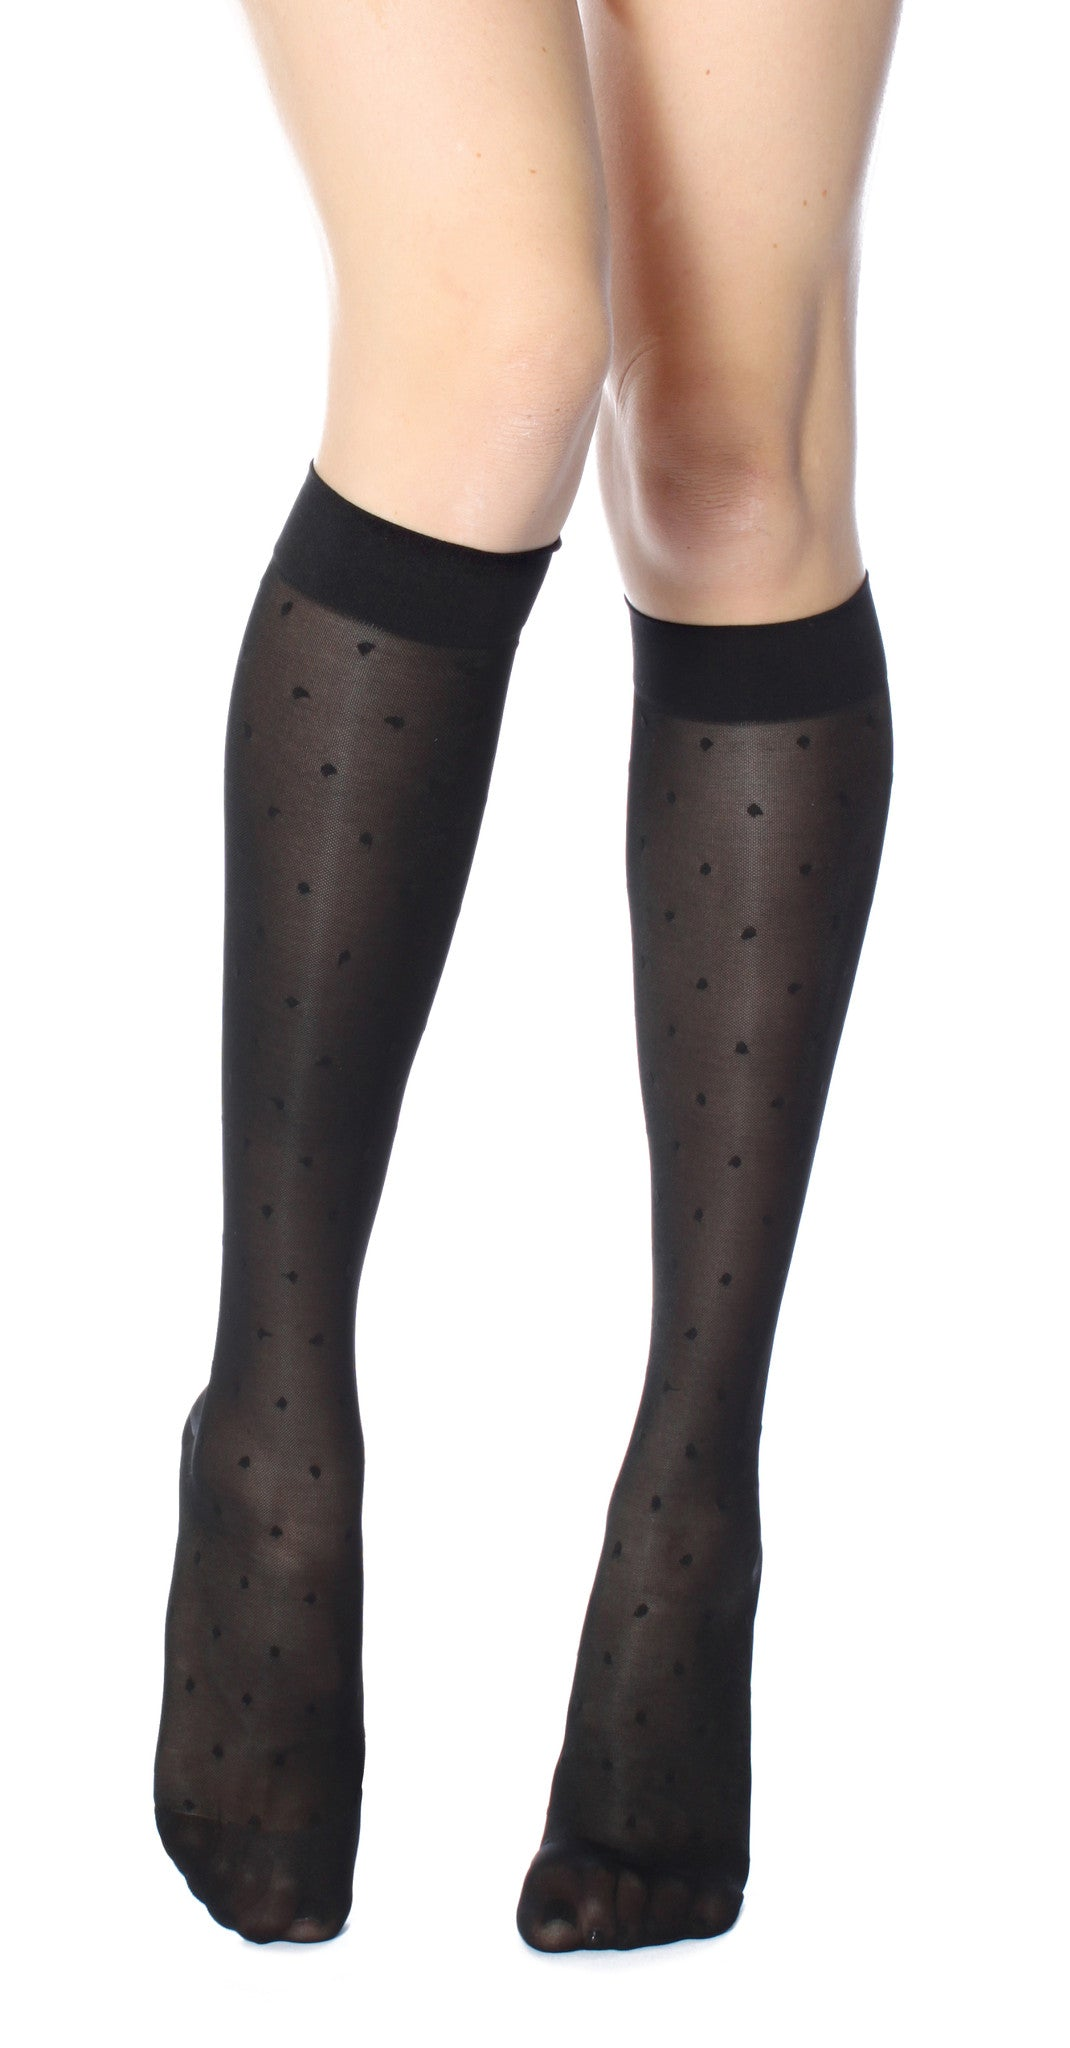 Women's Rejuva® Sheer Dot Knee High Support Hose in Black, Plum, Ash and Buff